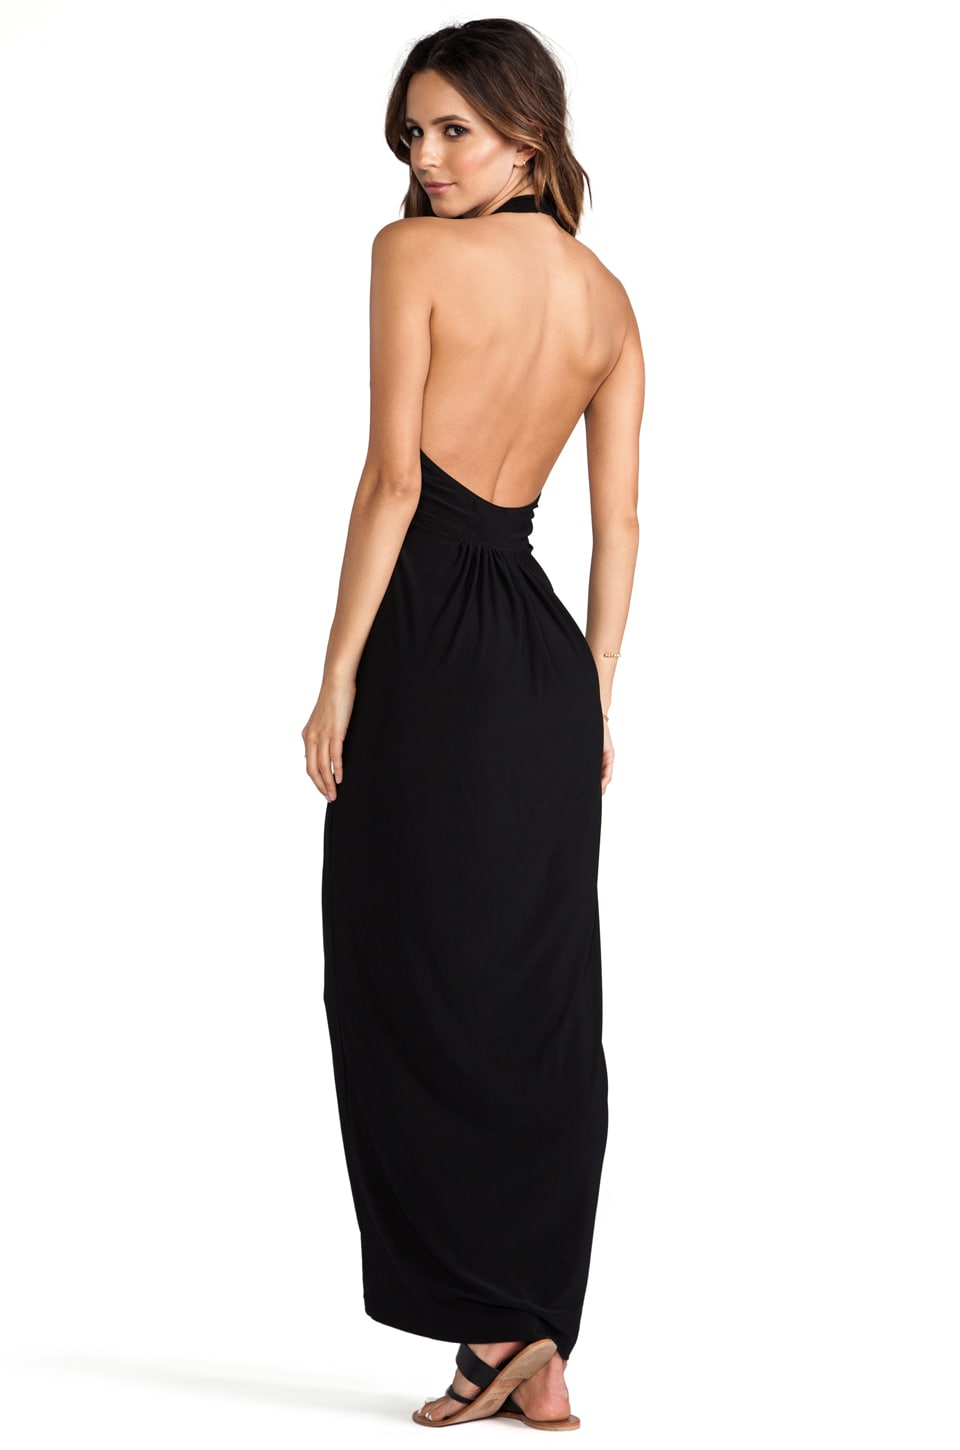 Norma Kamali Cross Halter Gown in Black